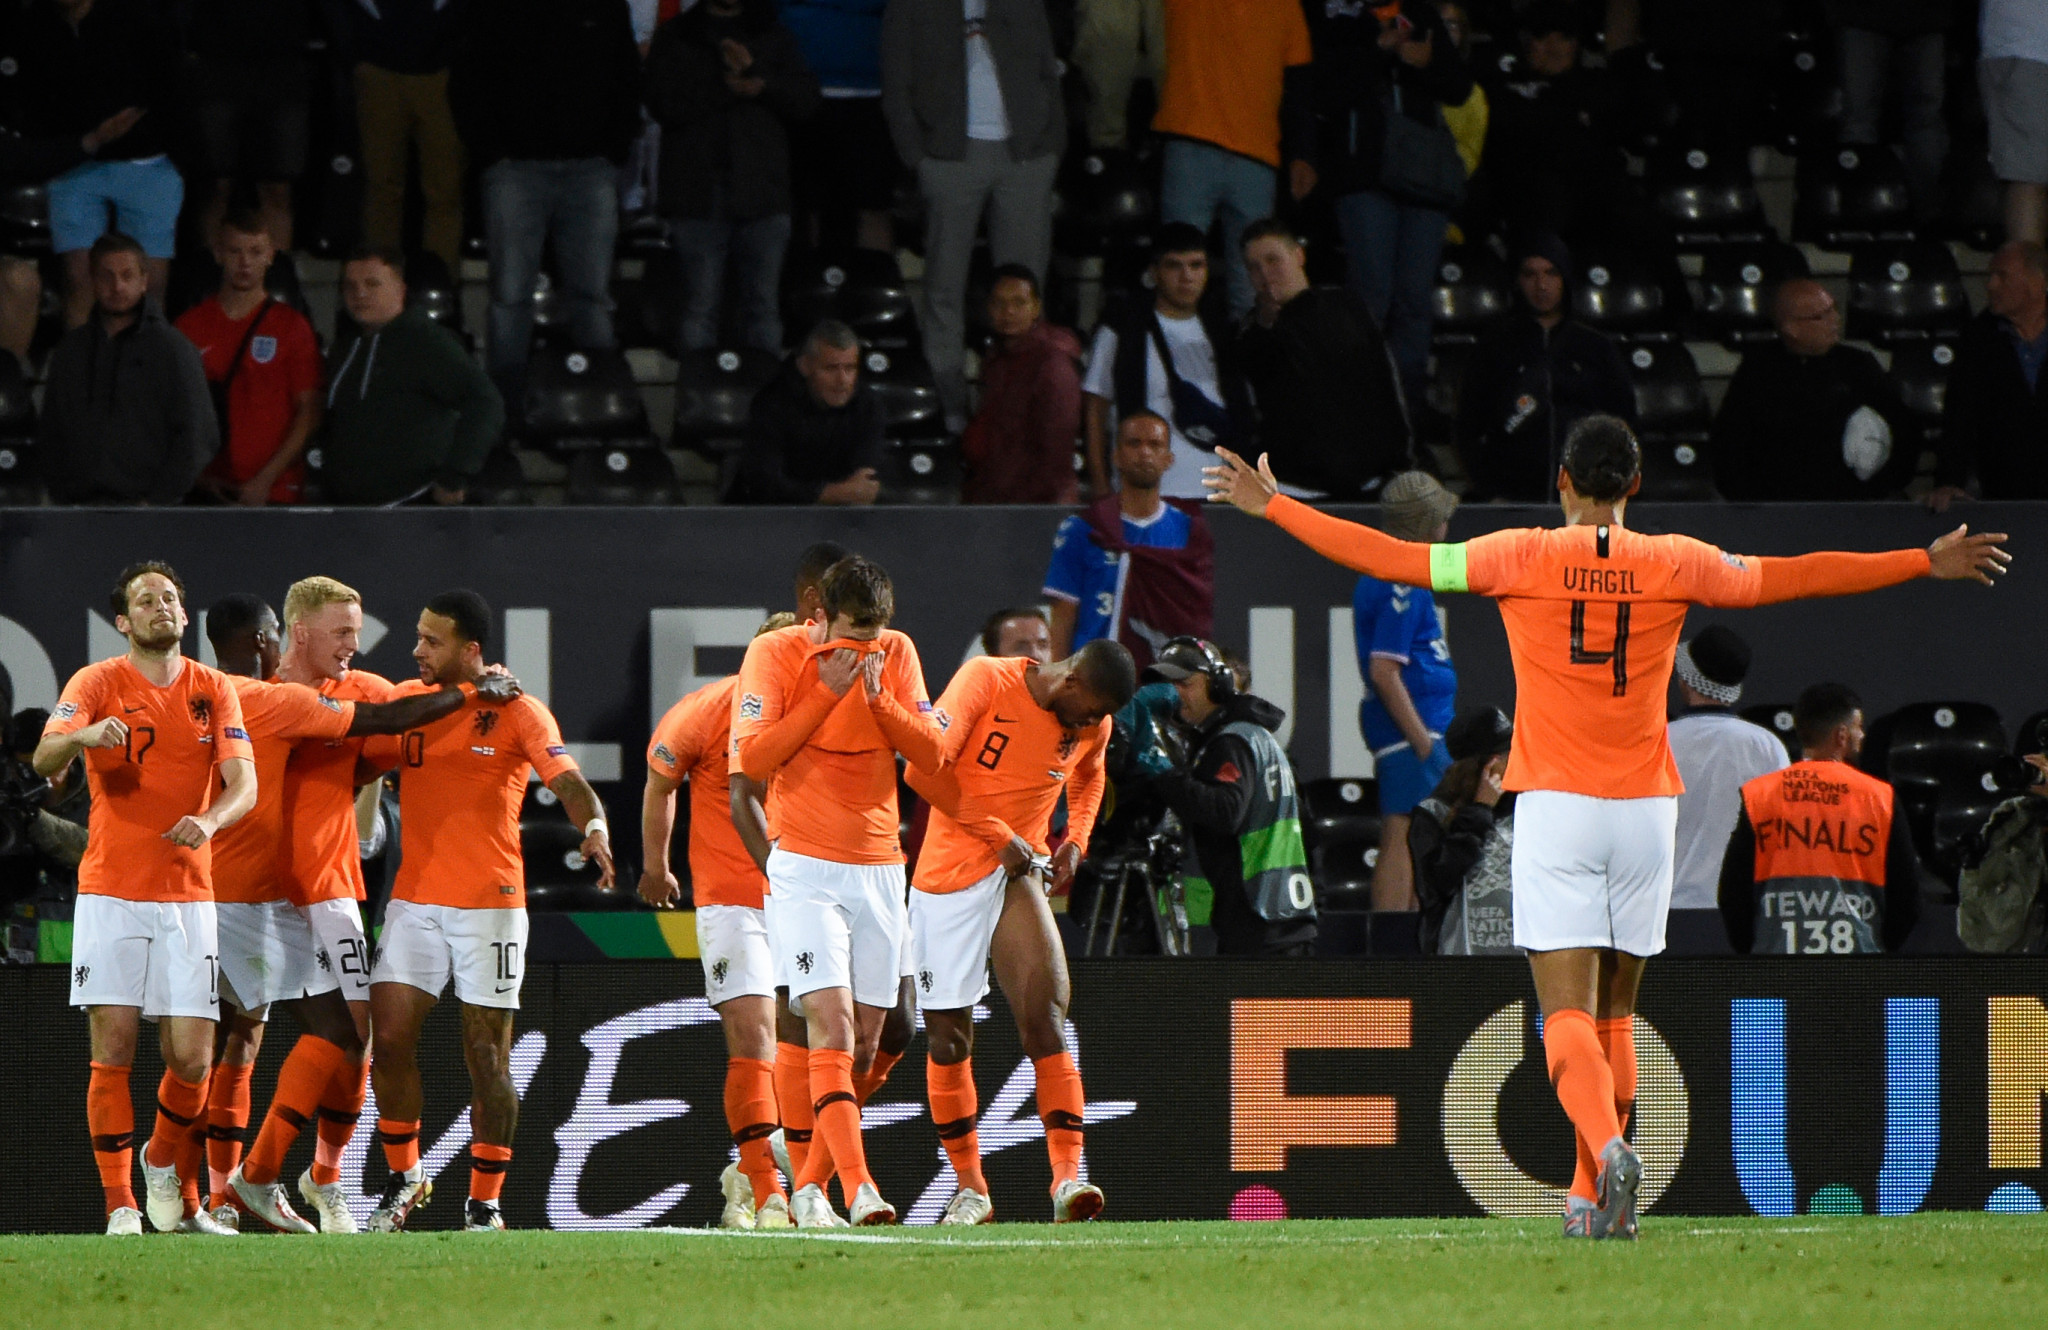 Netherlands' players celebrate their third goal in their UEFA Nations League semi-final against England at Afonso Henriques Stadium in Guimarães ©Getty Images